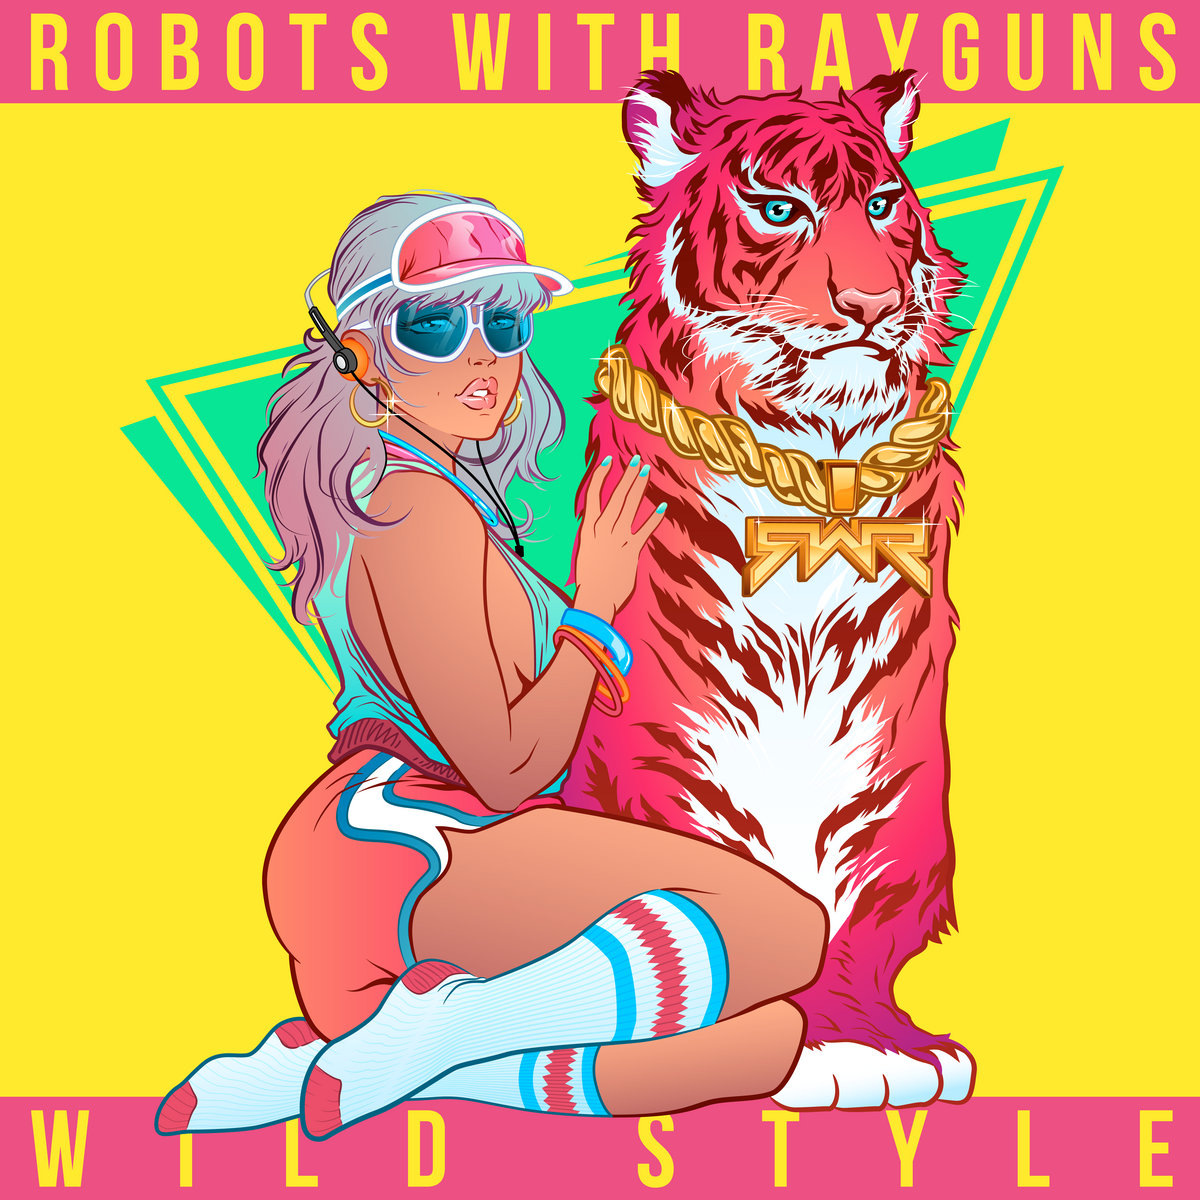 Robots with rayguns